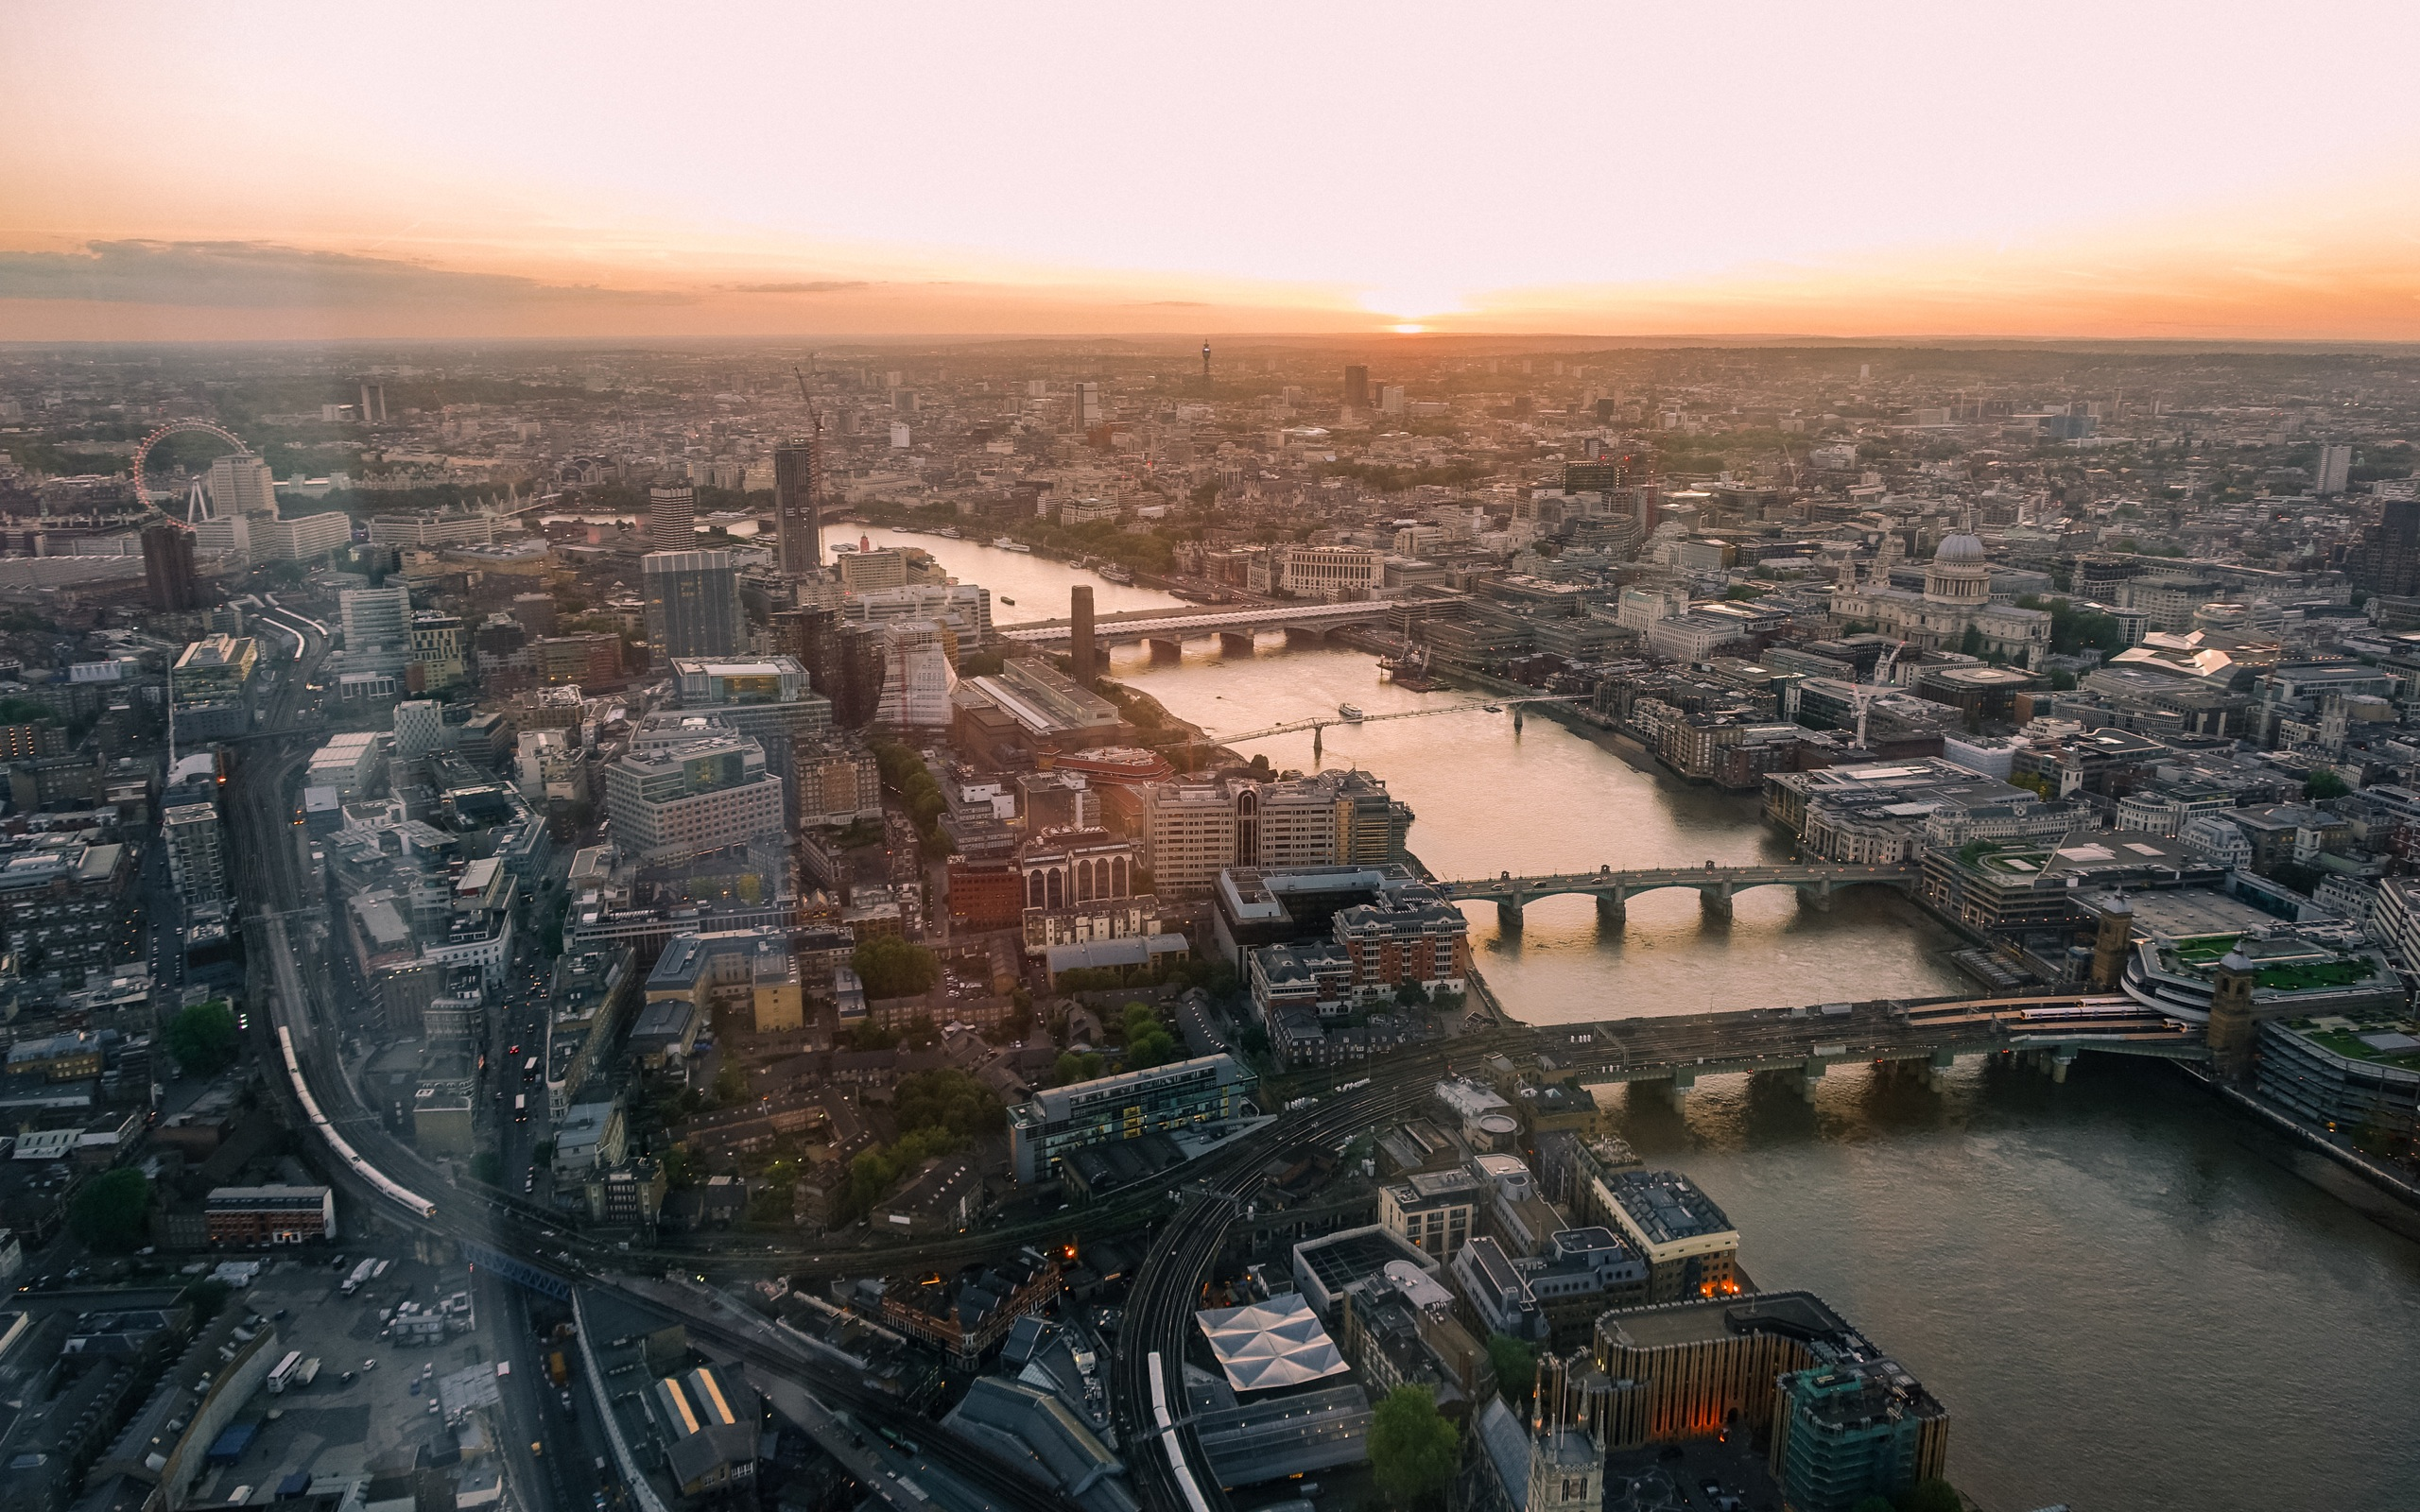 London Eye view from the Shard at sunset